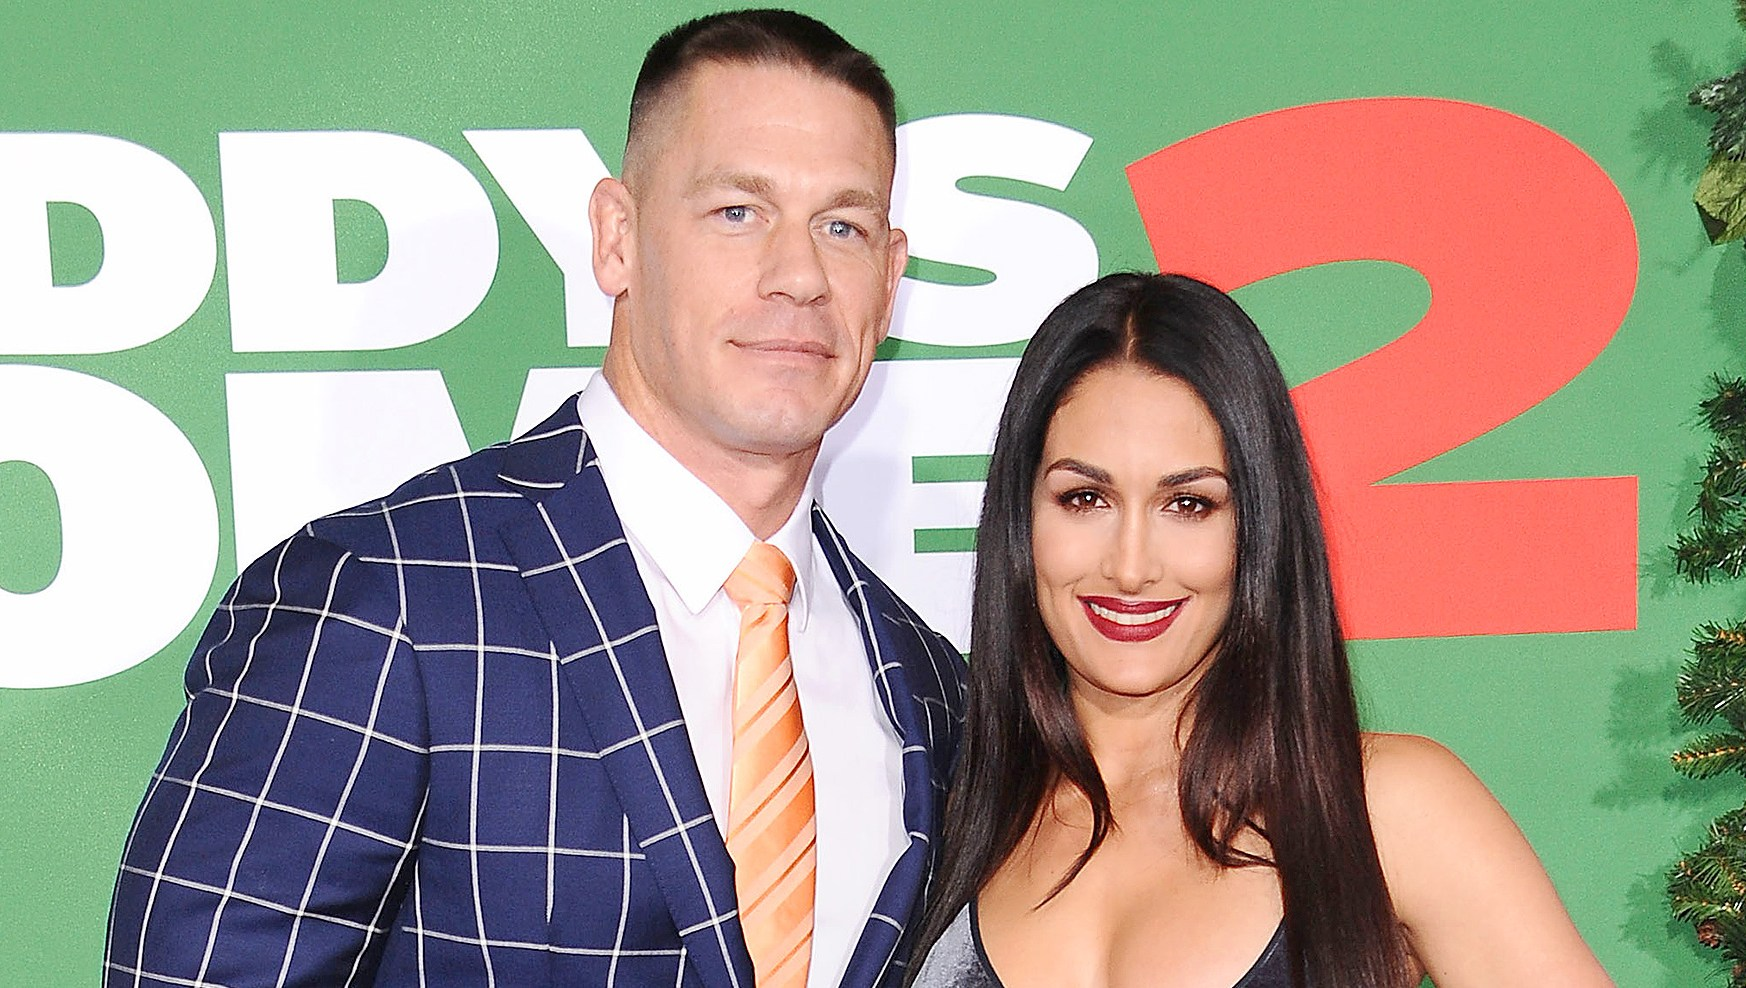 John Cena, Nikki Bella, Wedding Day, Instagram, Twitter, Split, Engagement